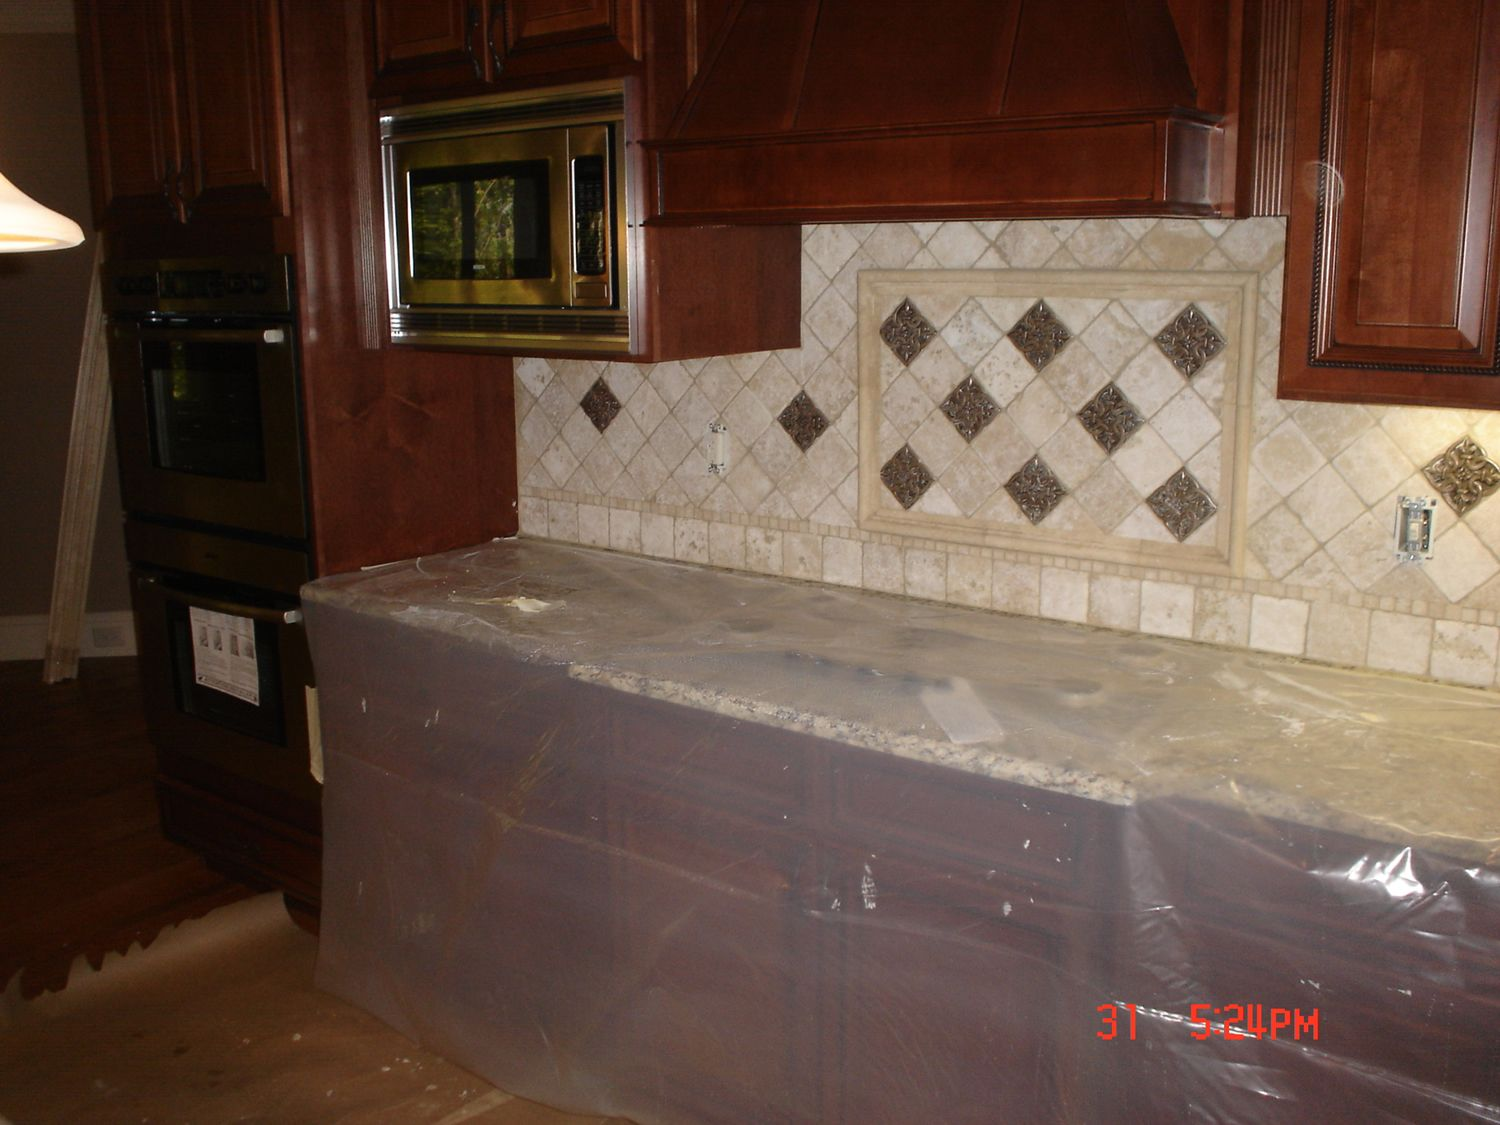 Kitchen Travertine Backsplash Ideas Part - 29: Kitchen Travertine Tile Backsplash Ideas | Kitchen Tile Backsplash  Installation In Atlanta Ga. Backsplash Ideas